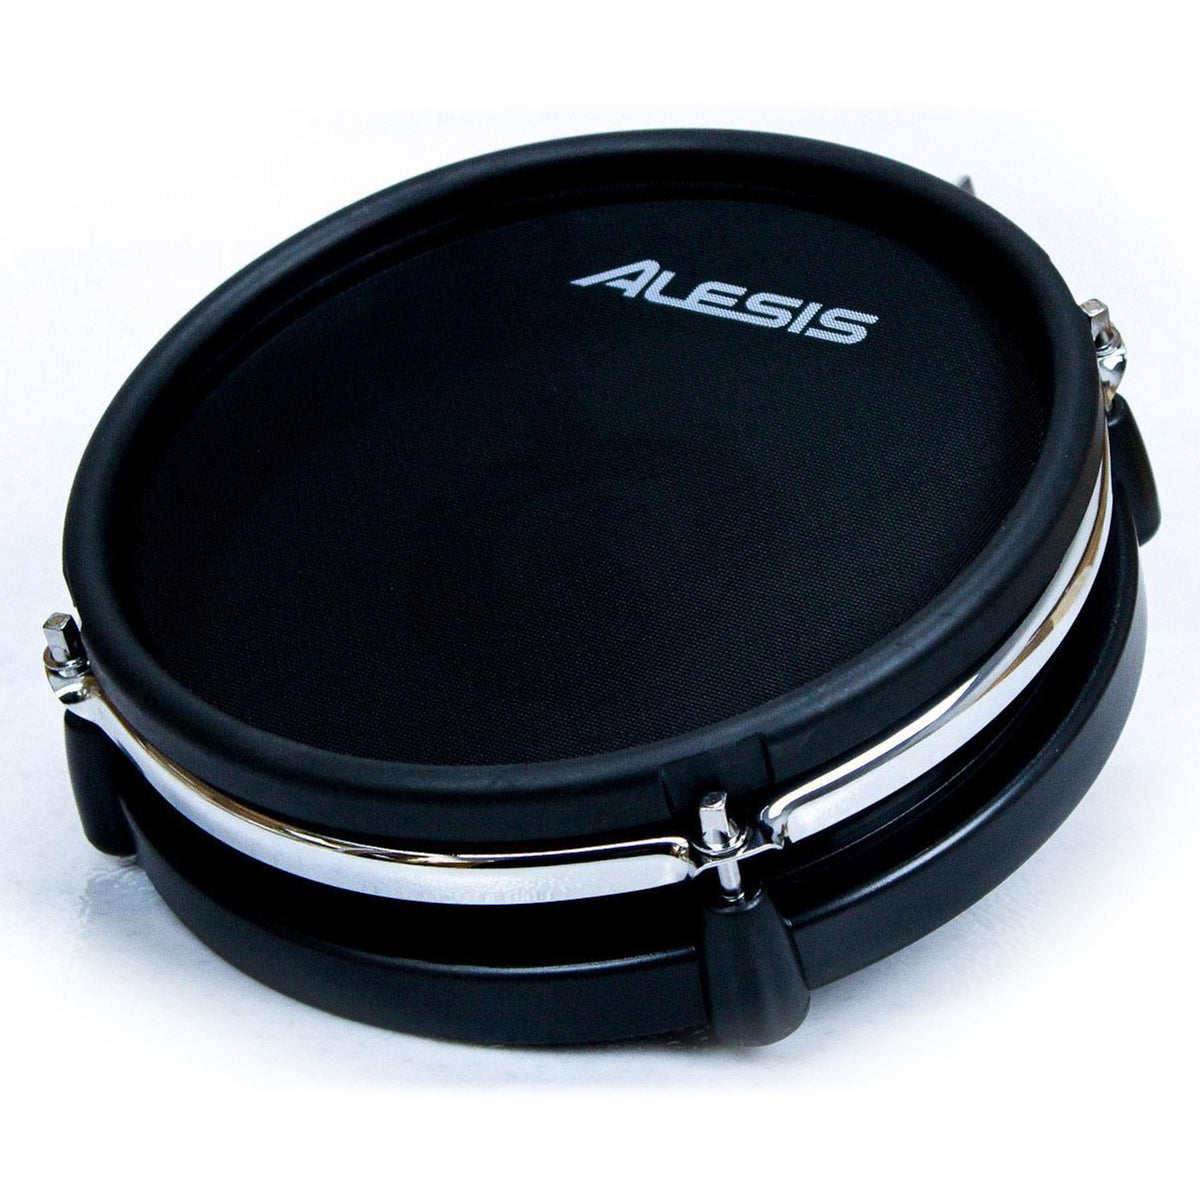 "Alesis 8"" Dual Zone Drum Pad for Alesis Command Mesh Kit"